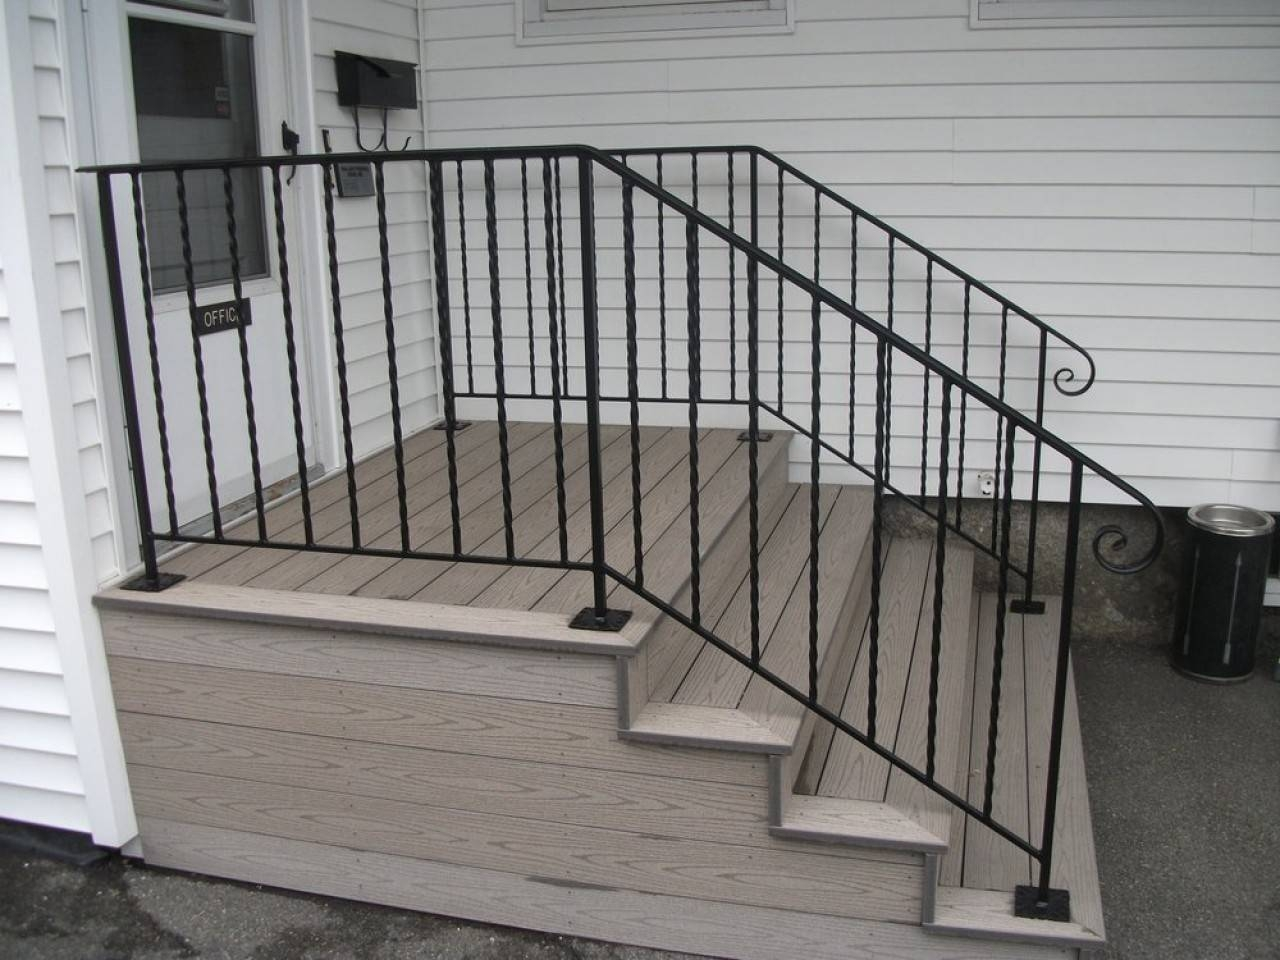 Simple Iron Railing Designs Stairs Kitchen Barb Homes | Metal Railing Designs Stairs | Rot Iron Staircase | Step | Luxury | Creative Outdoor Stair | Curved Railing